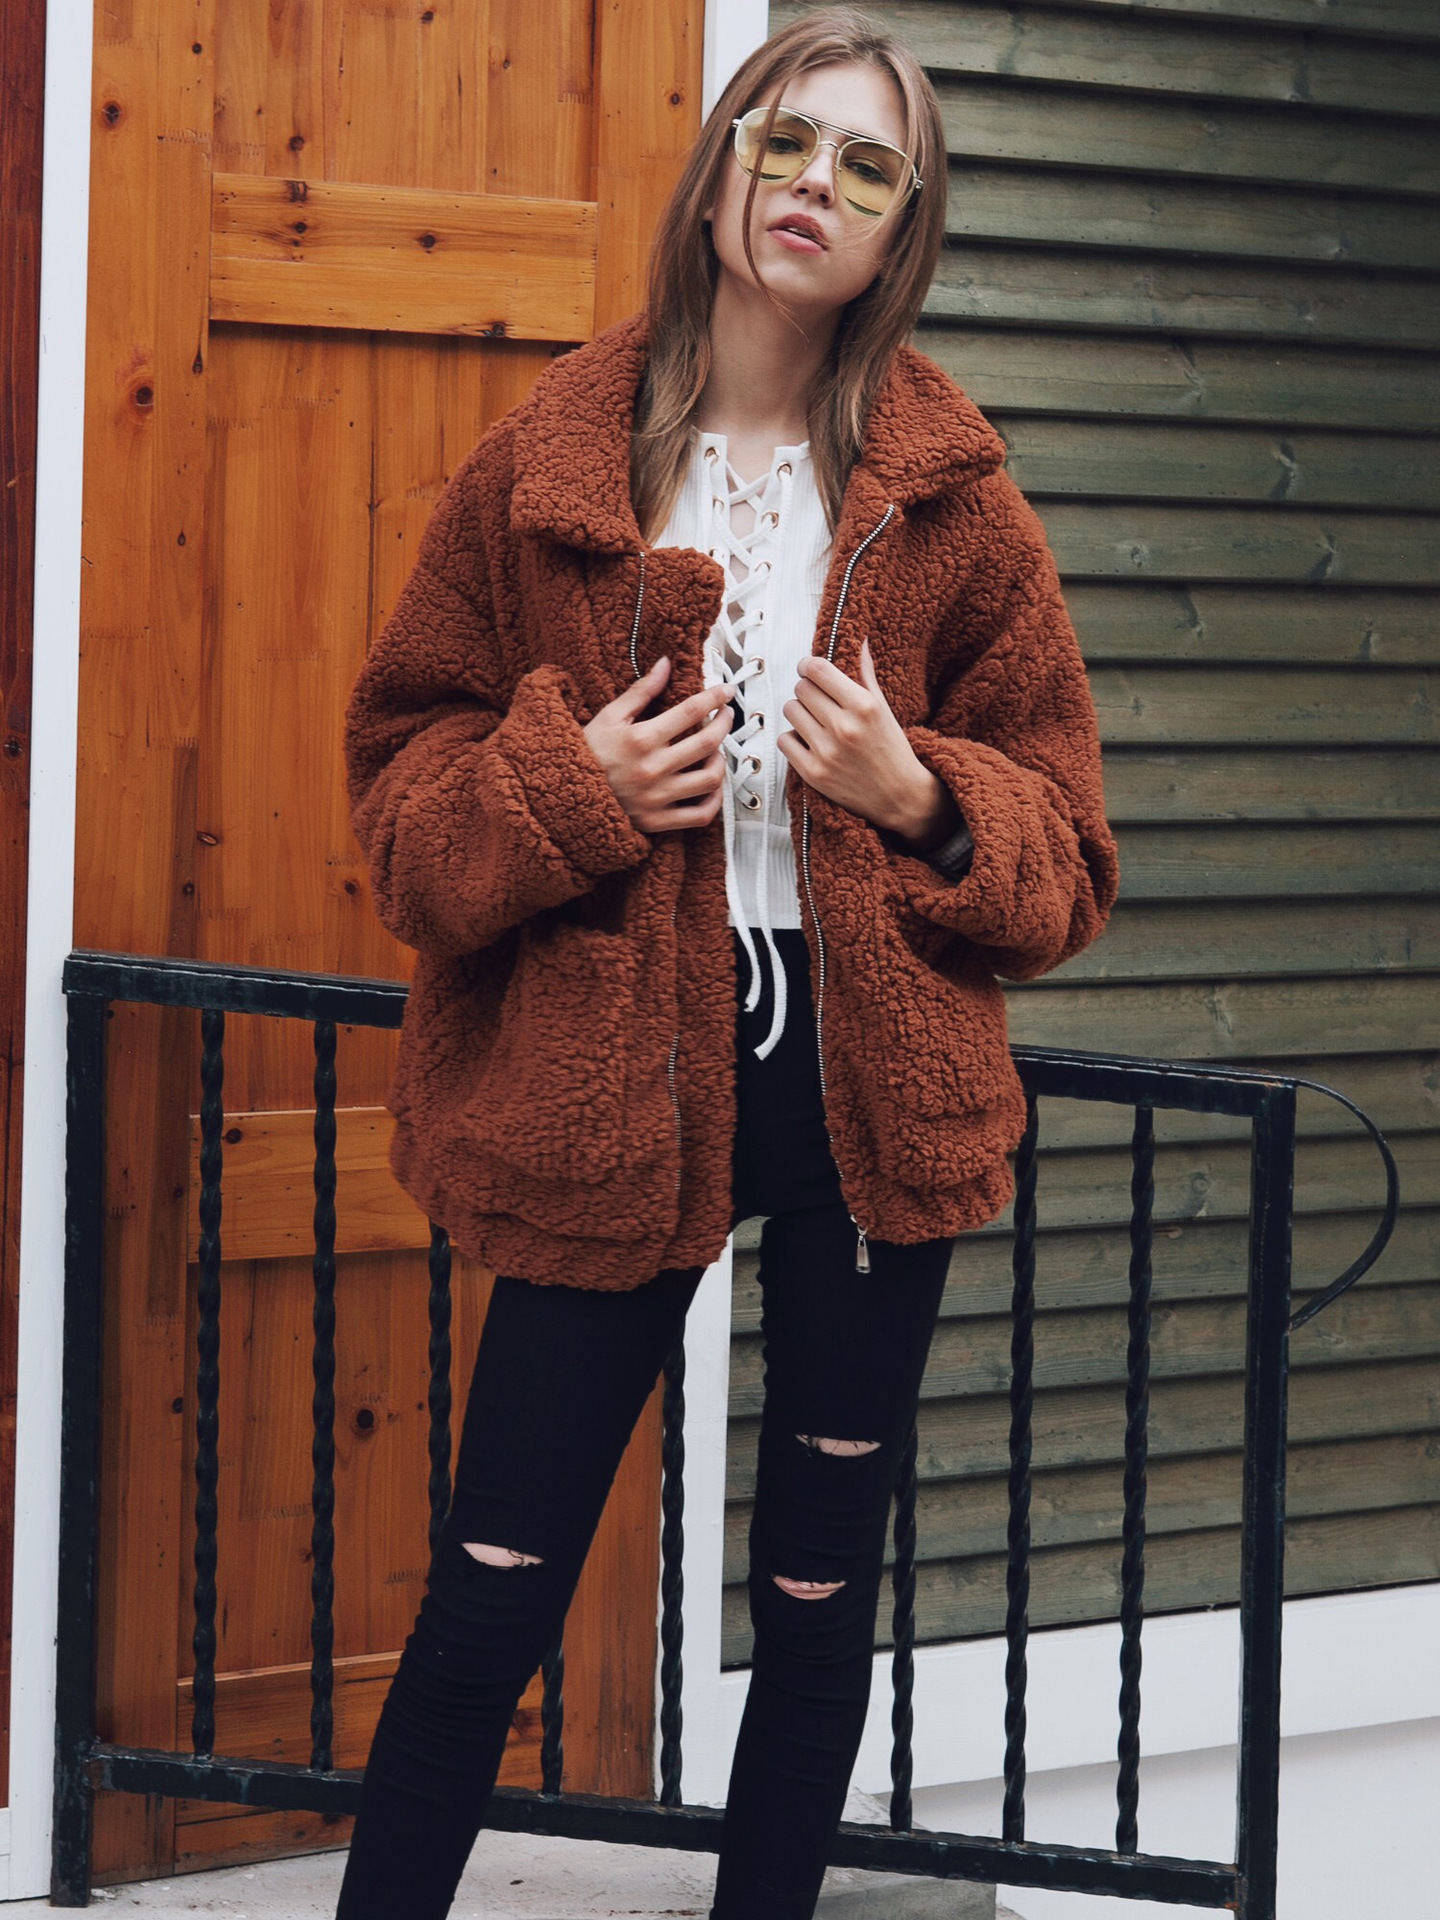 Autumn Winter Warm Coats Women 2019 Casual Basic Jackets Fur Wool Blends Female Plush Loose Red Coat Woman Plus Size Overcoat in Jackets from Women 39 s Clothing